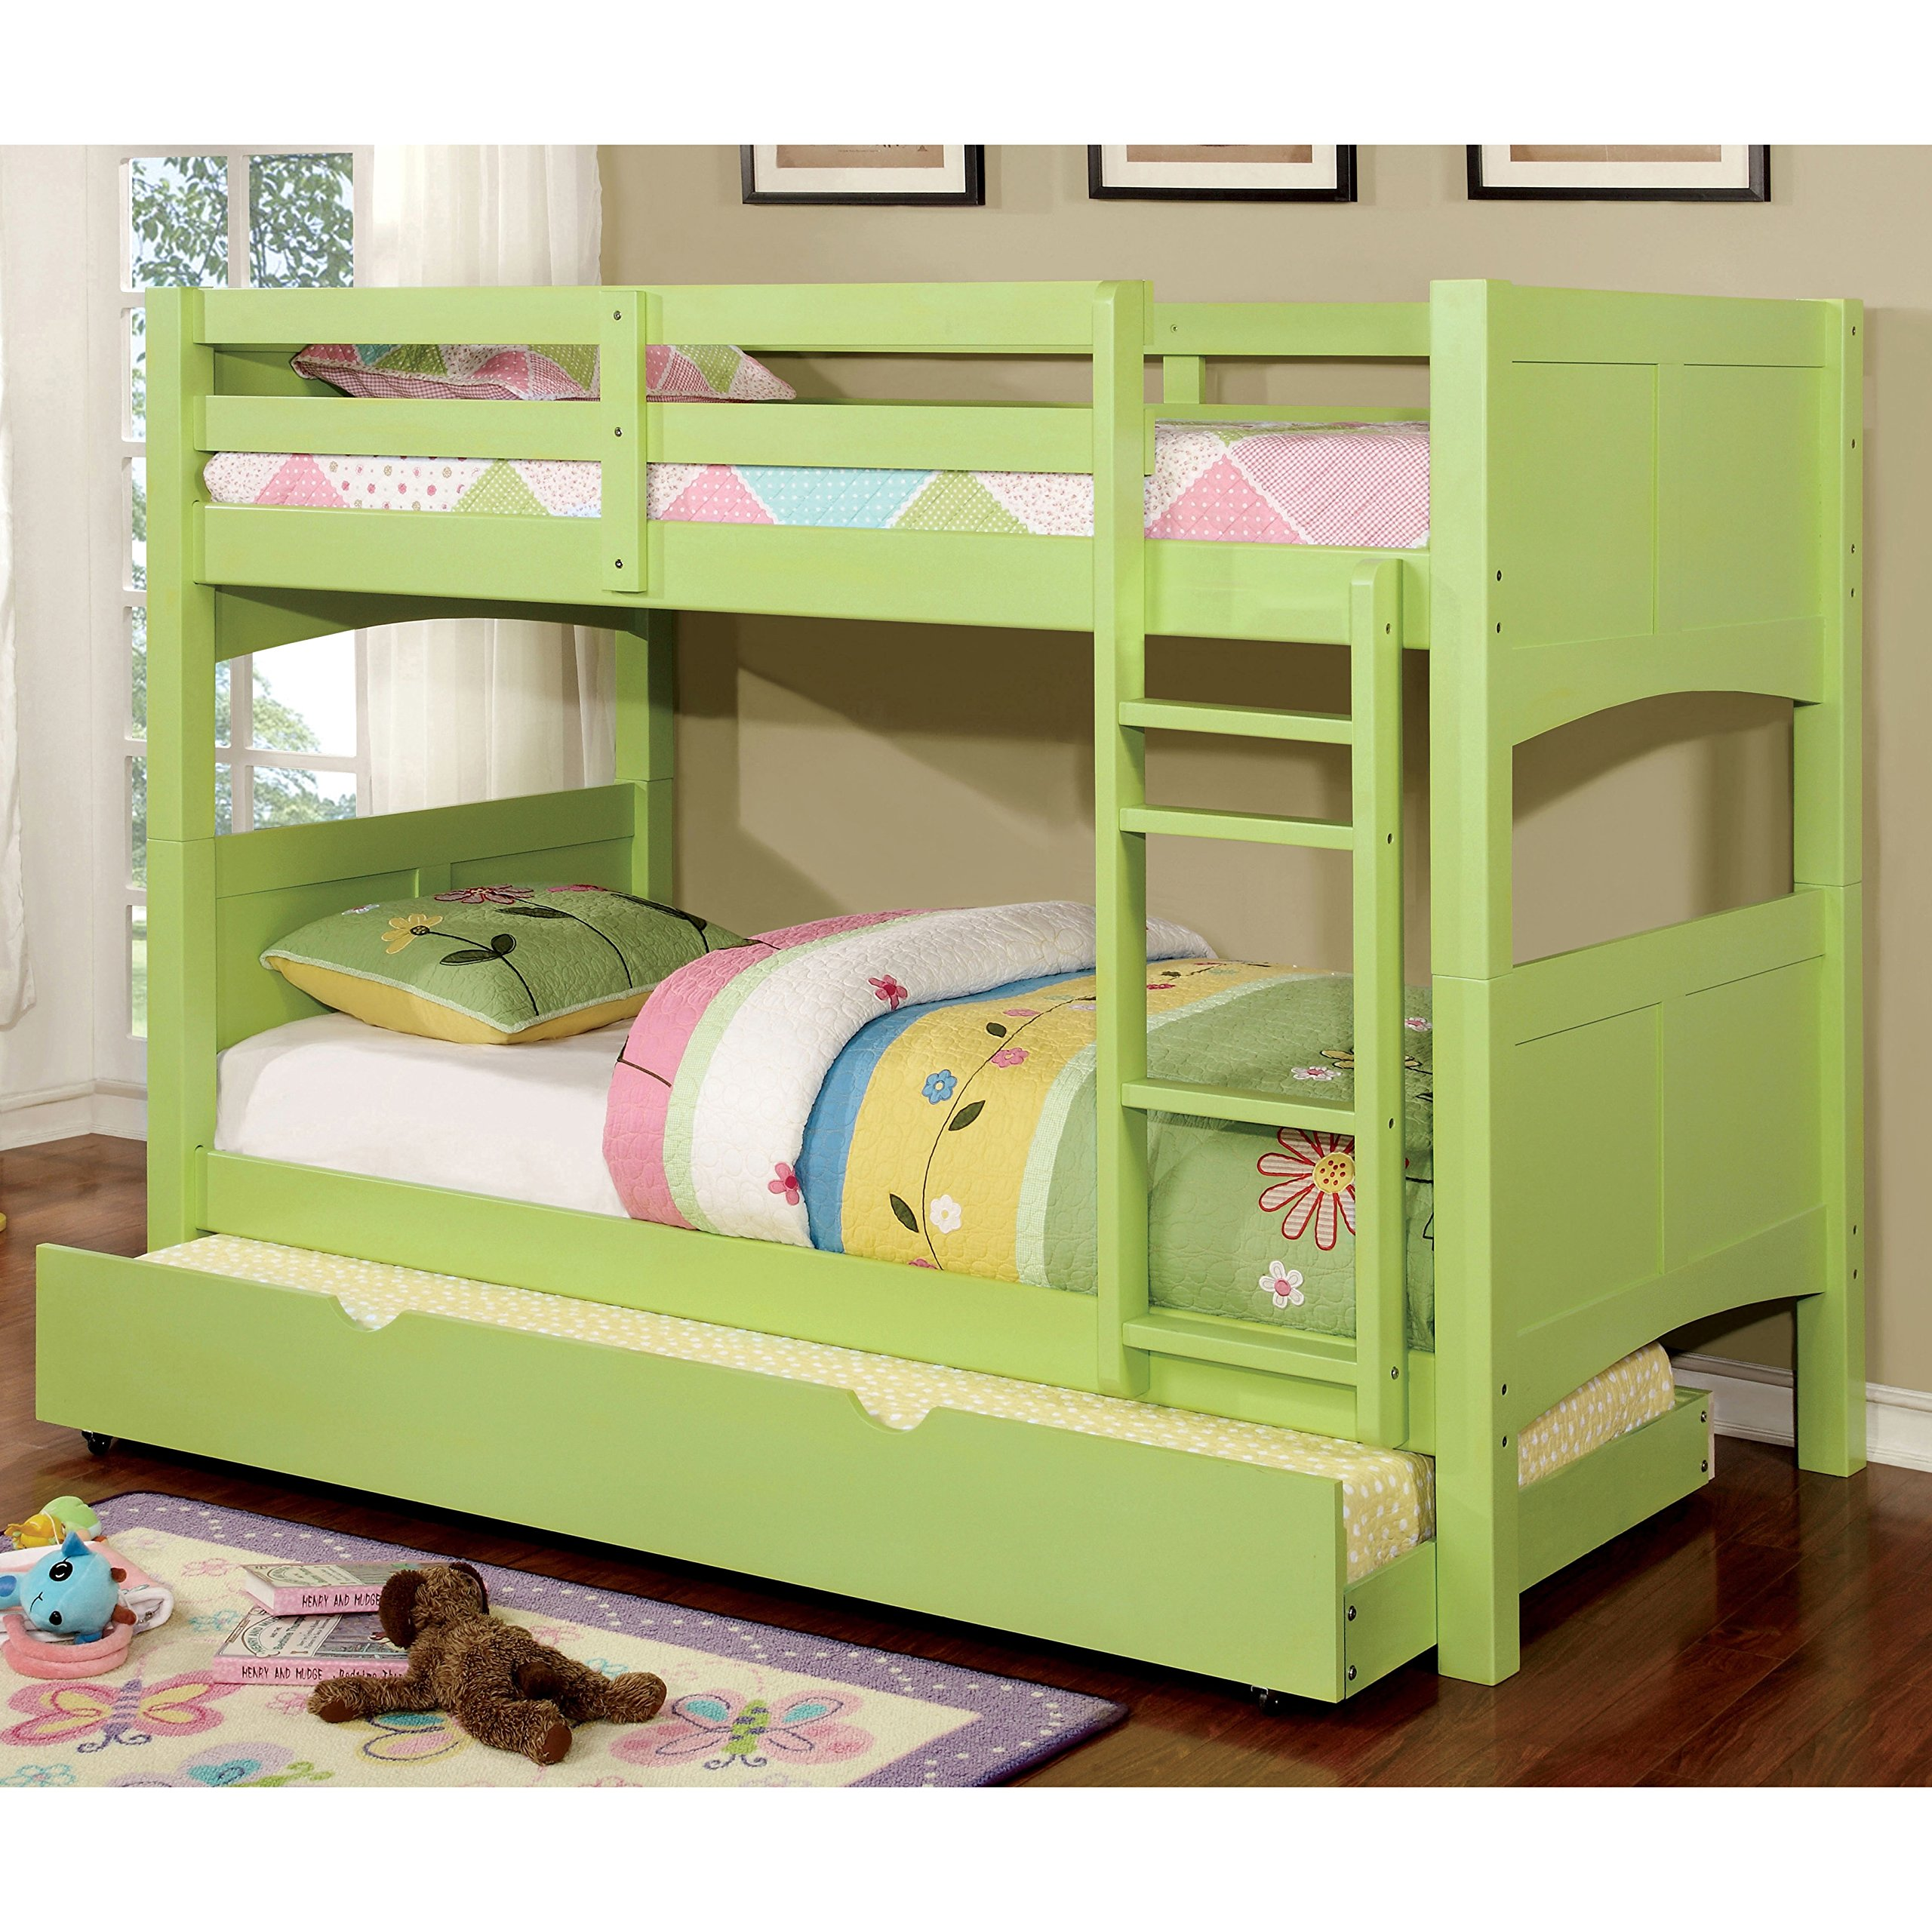 Furniture of America Colorpop Modern Twin-size Pull-out Trundle Keylime Green